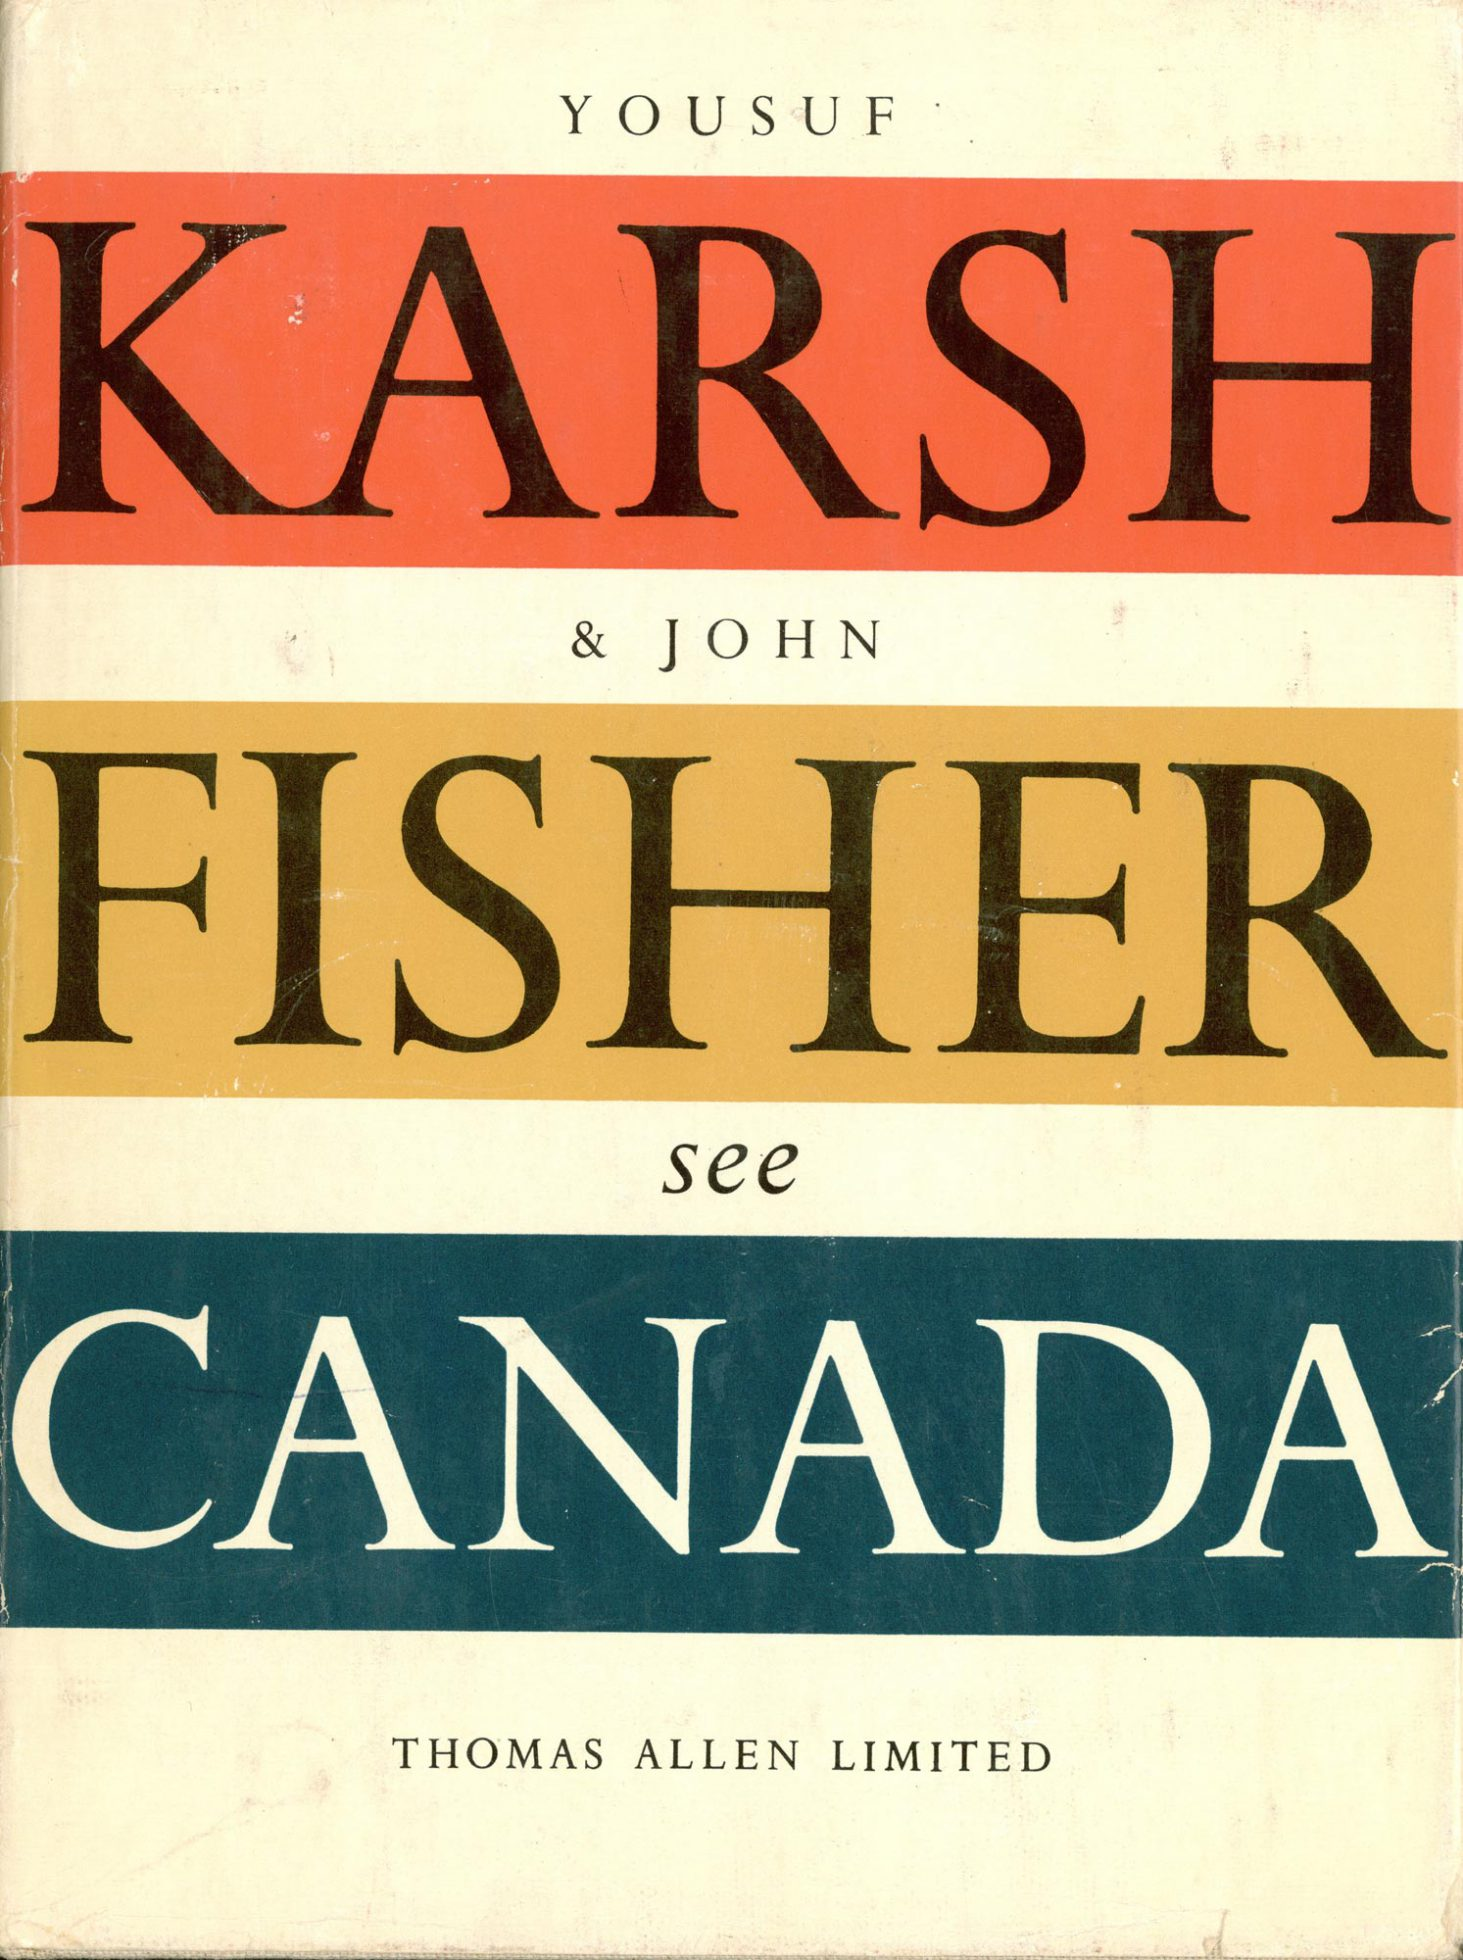 Yousuf Karsh and John Fisher See Canada